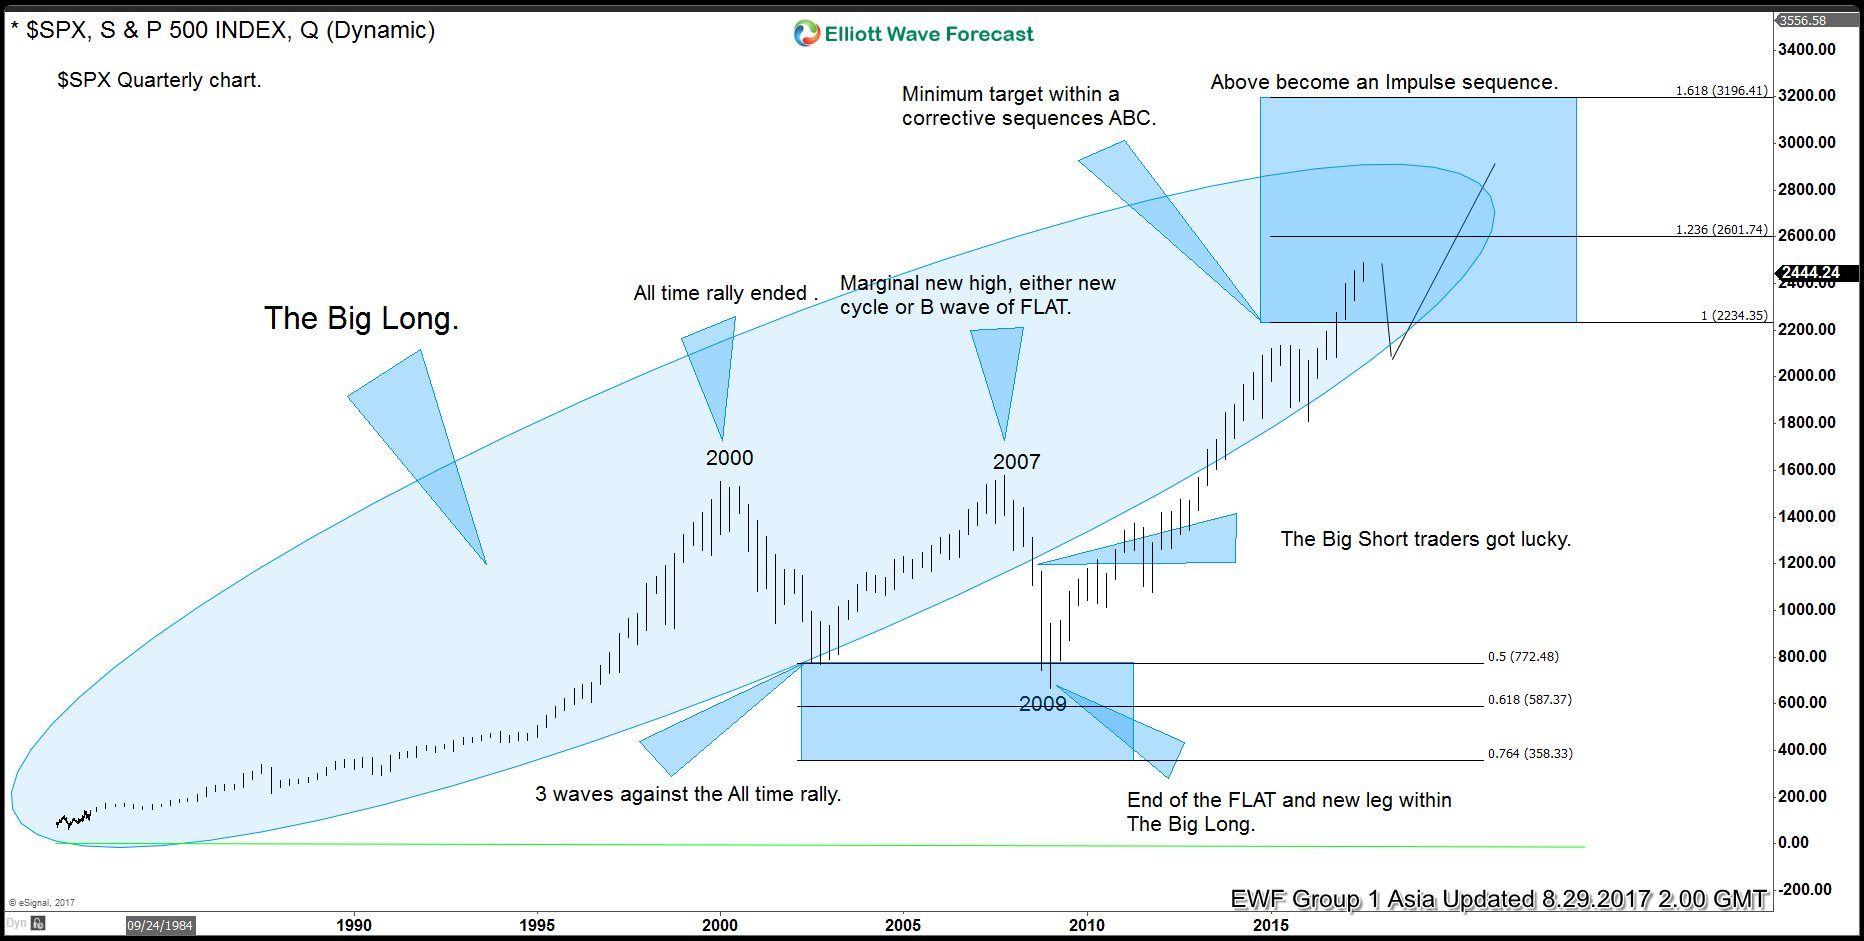 Spx Elliott Wave View The Big Long Grand Super Cycle Wave